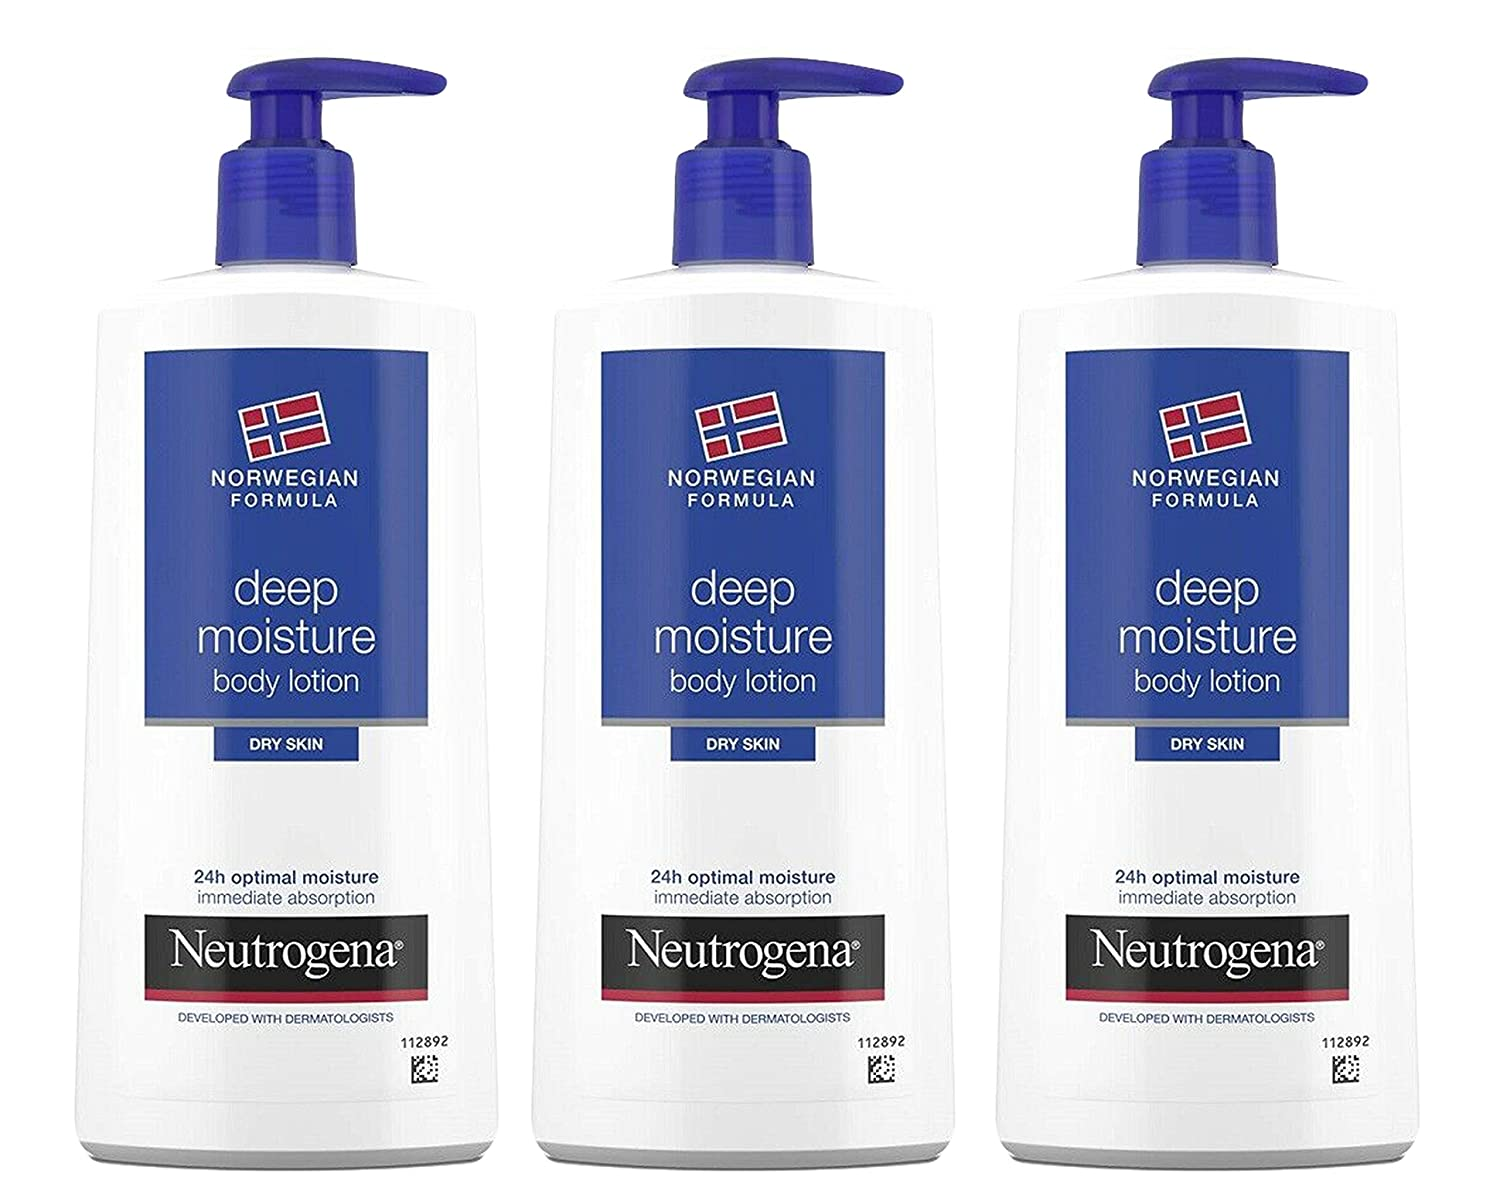 Neutrogena Deep Moisture Body Lotion for Dry Skin, Norwegian Formula, 24 Hour Moisture, 13.5 Ounce (Pack of 3)